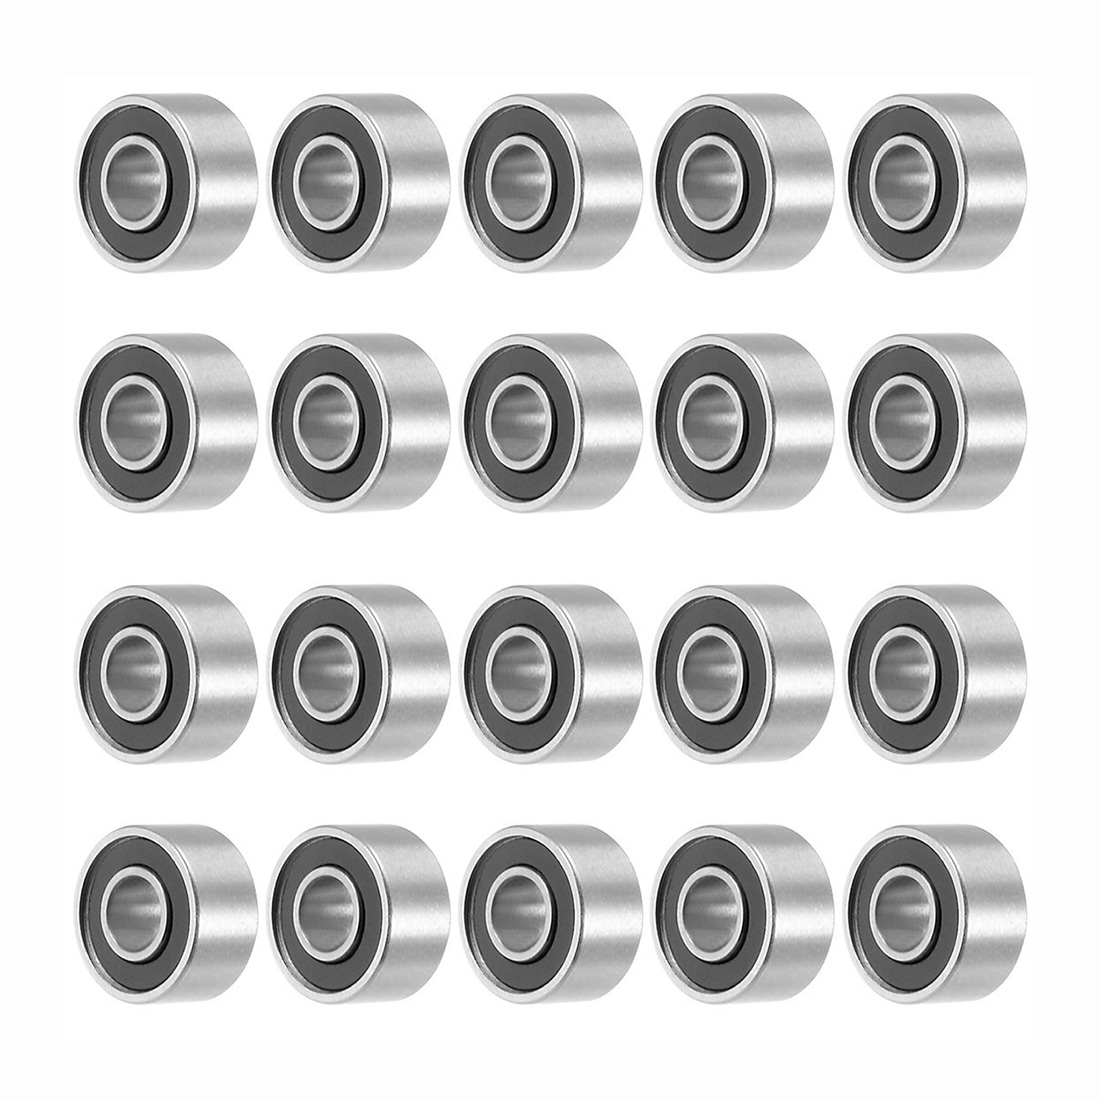 ᑐ Insightful Reviews for sz bearing and get free shipping